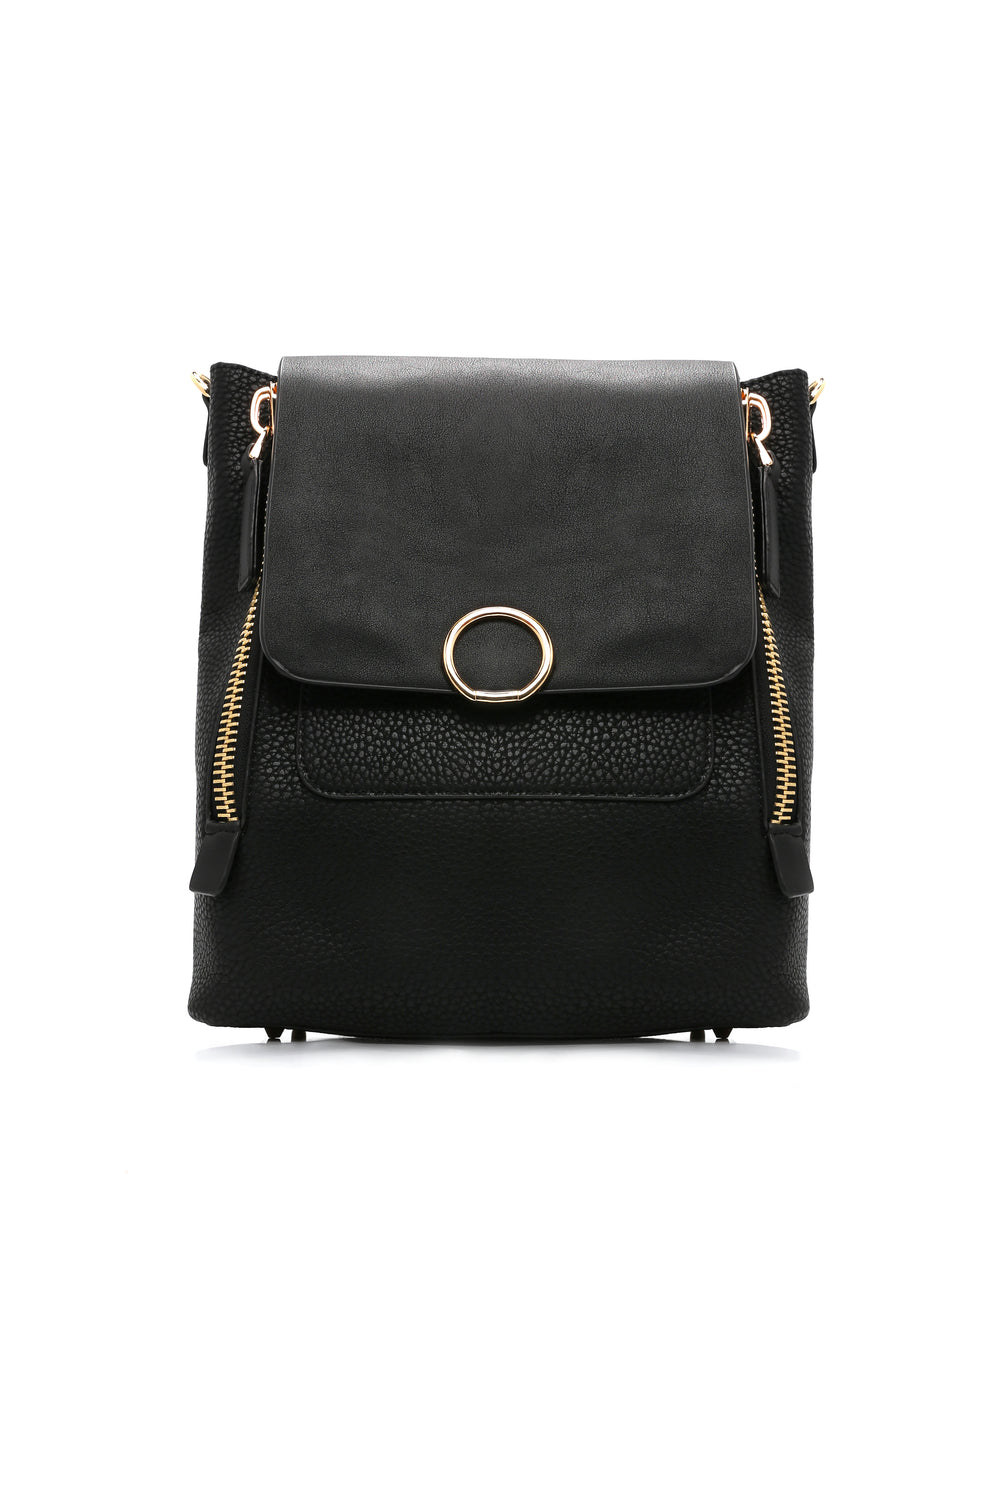 Kelsey Vegan Leather Bag - Black